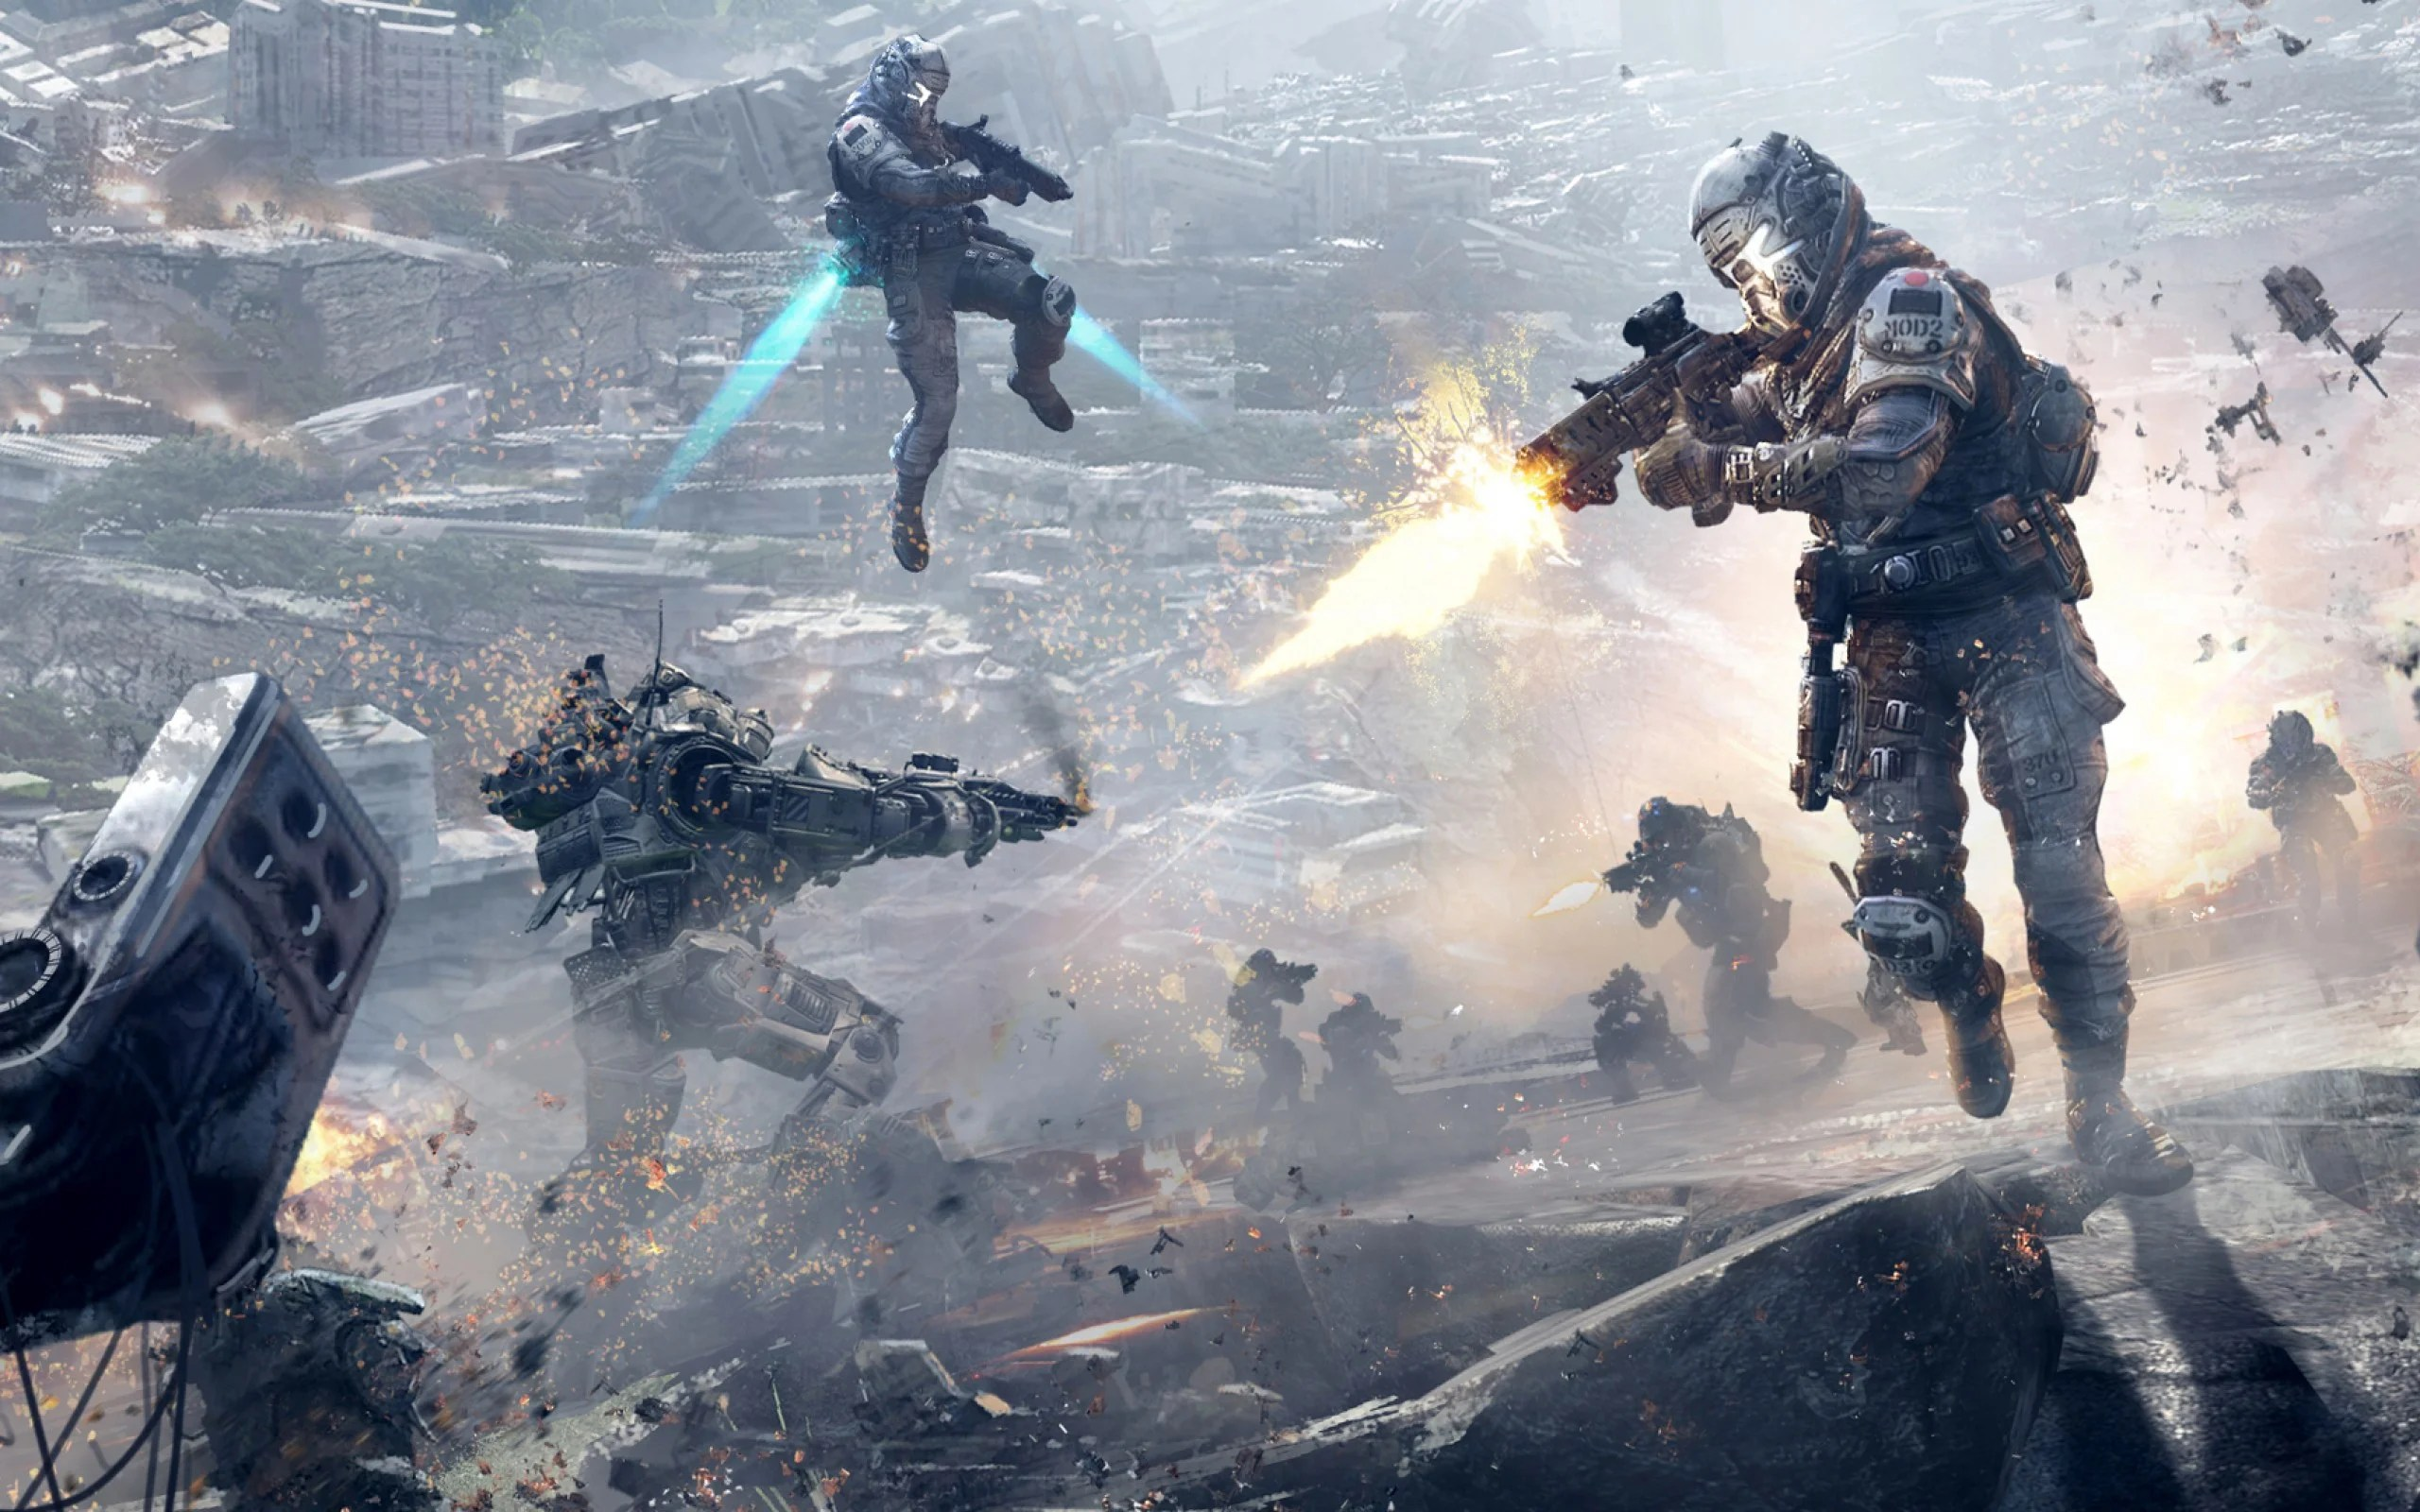 Video Wallpaper Hd Fall Titanfall Uk Release Date Gameplay Basics Dlc And